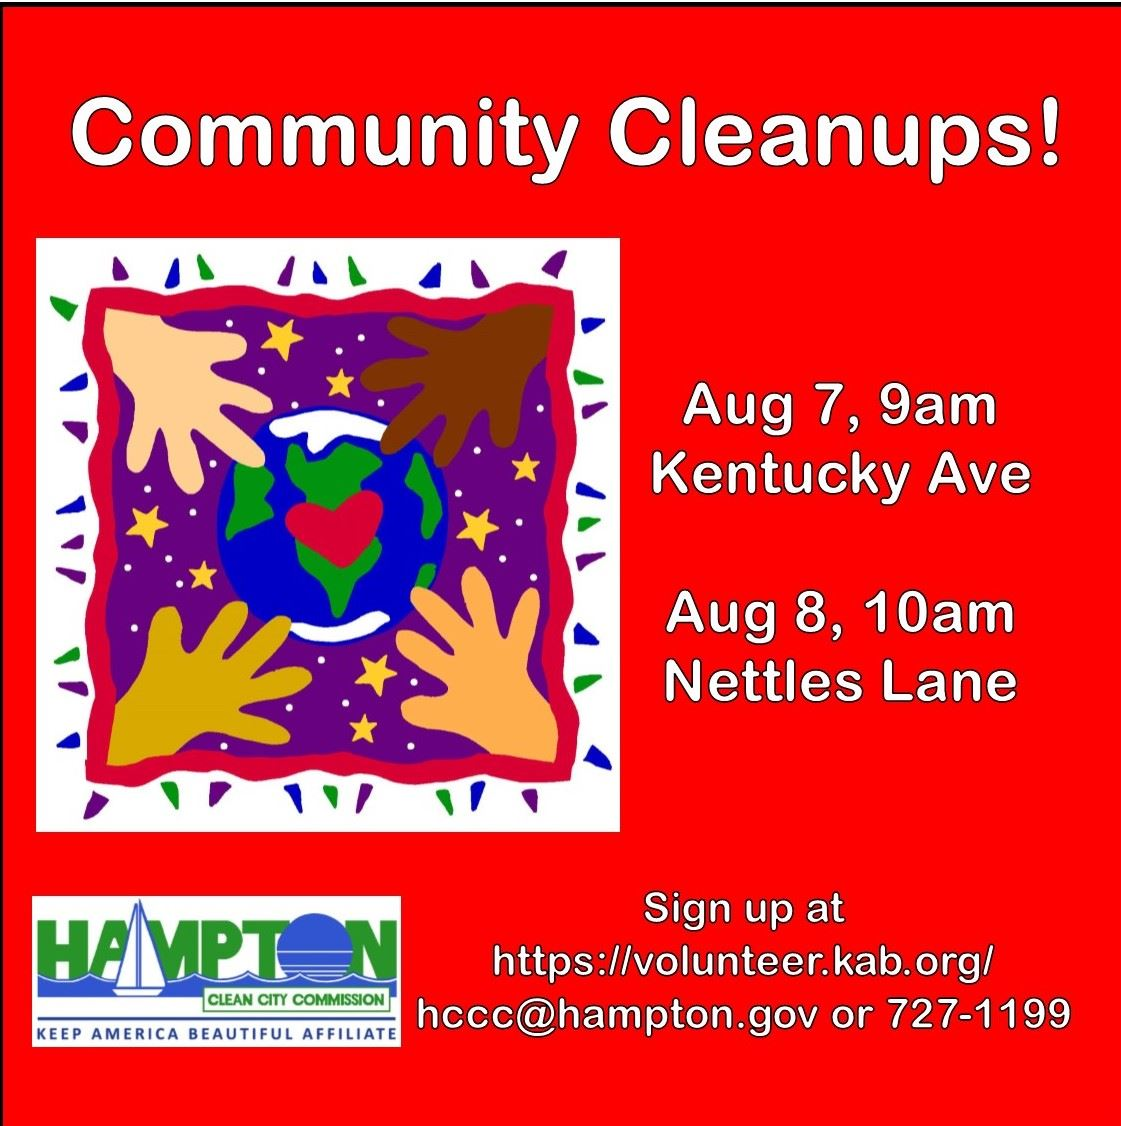 August 7 Cleanup Kentucky Avenue August 7 9am;  Nettles Lane Cleanup August 8 10am